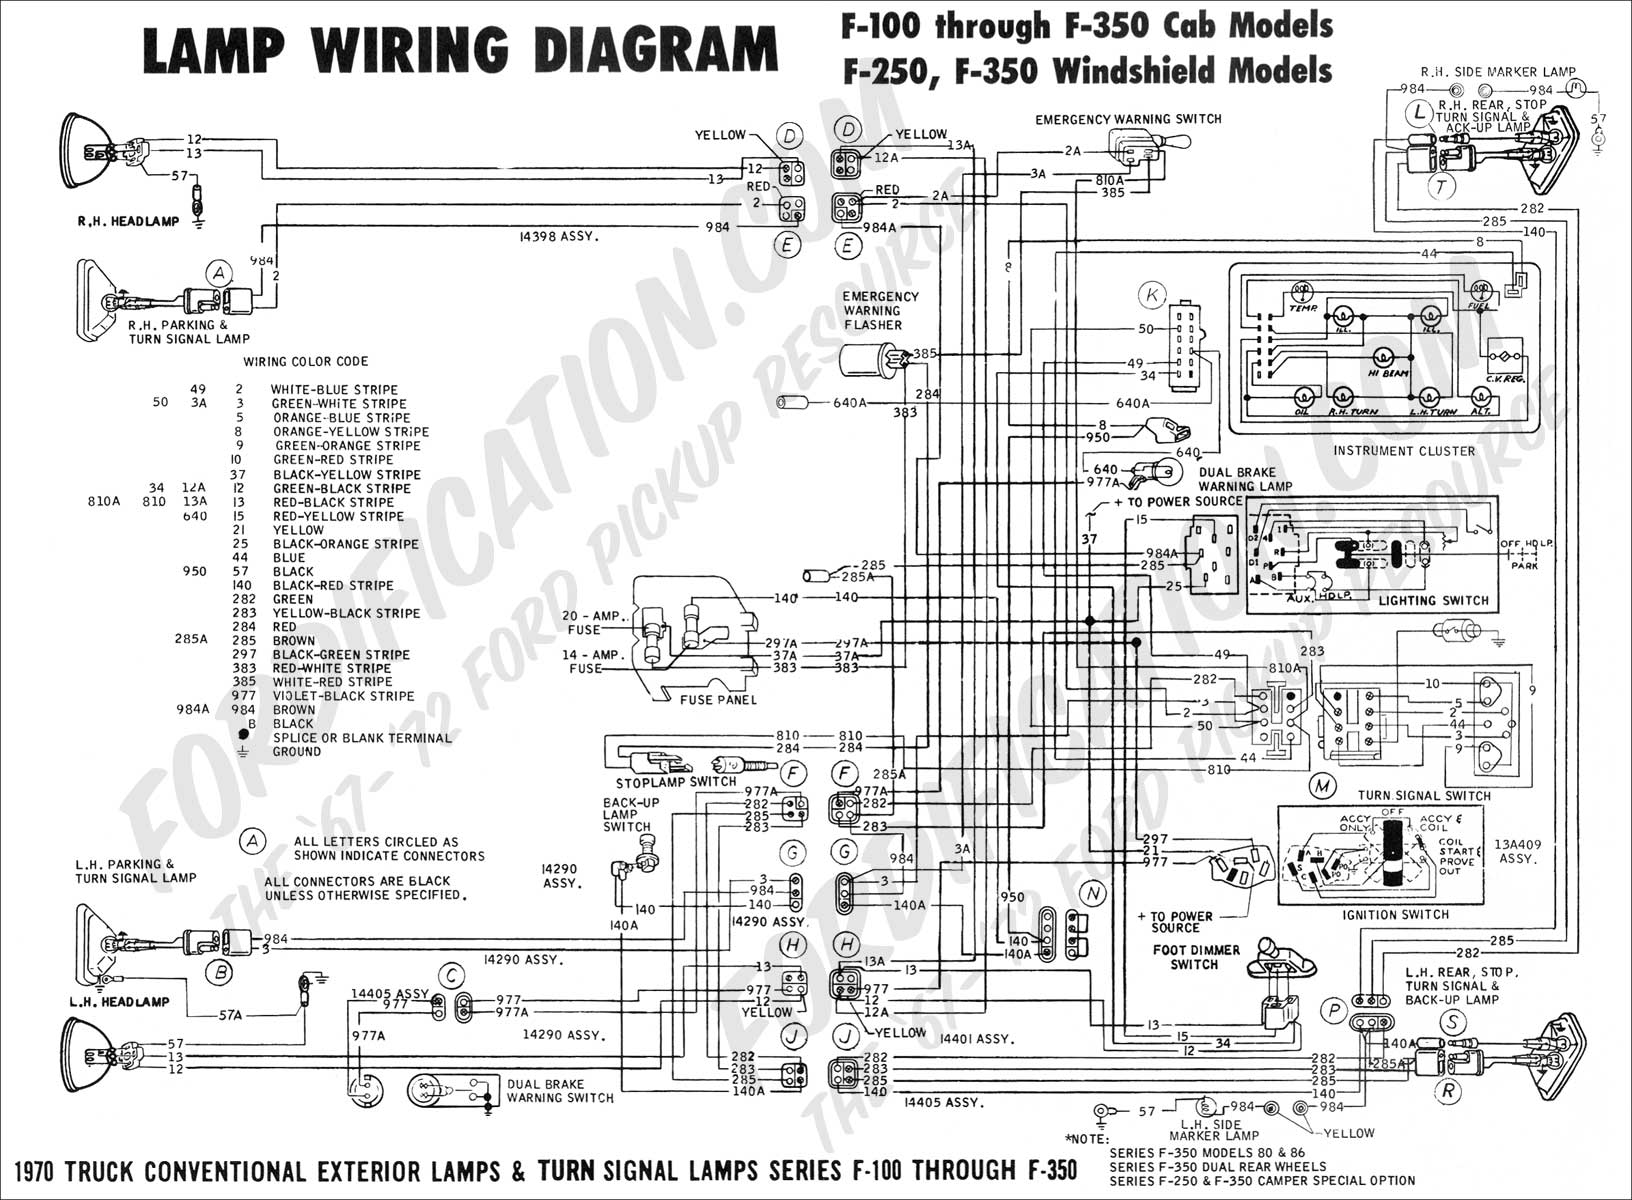 1991 Ford L8000 Wiring Diagram